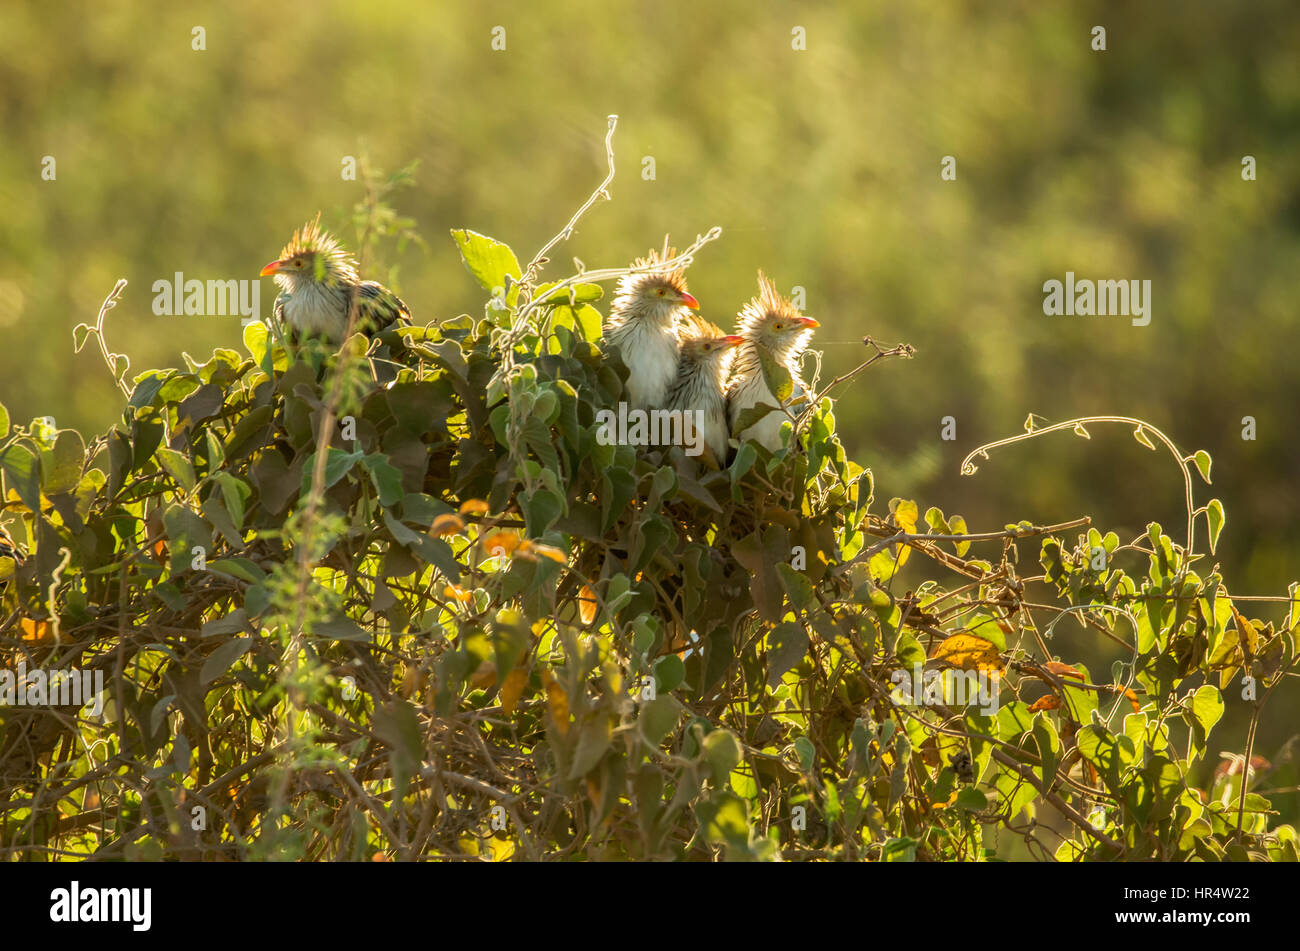 Four Backlit Guira Cuckoos perched in a bush at sunset in the Pantanal region of Brazil, South America - Stock Image